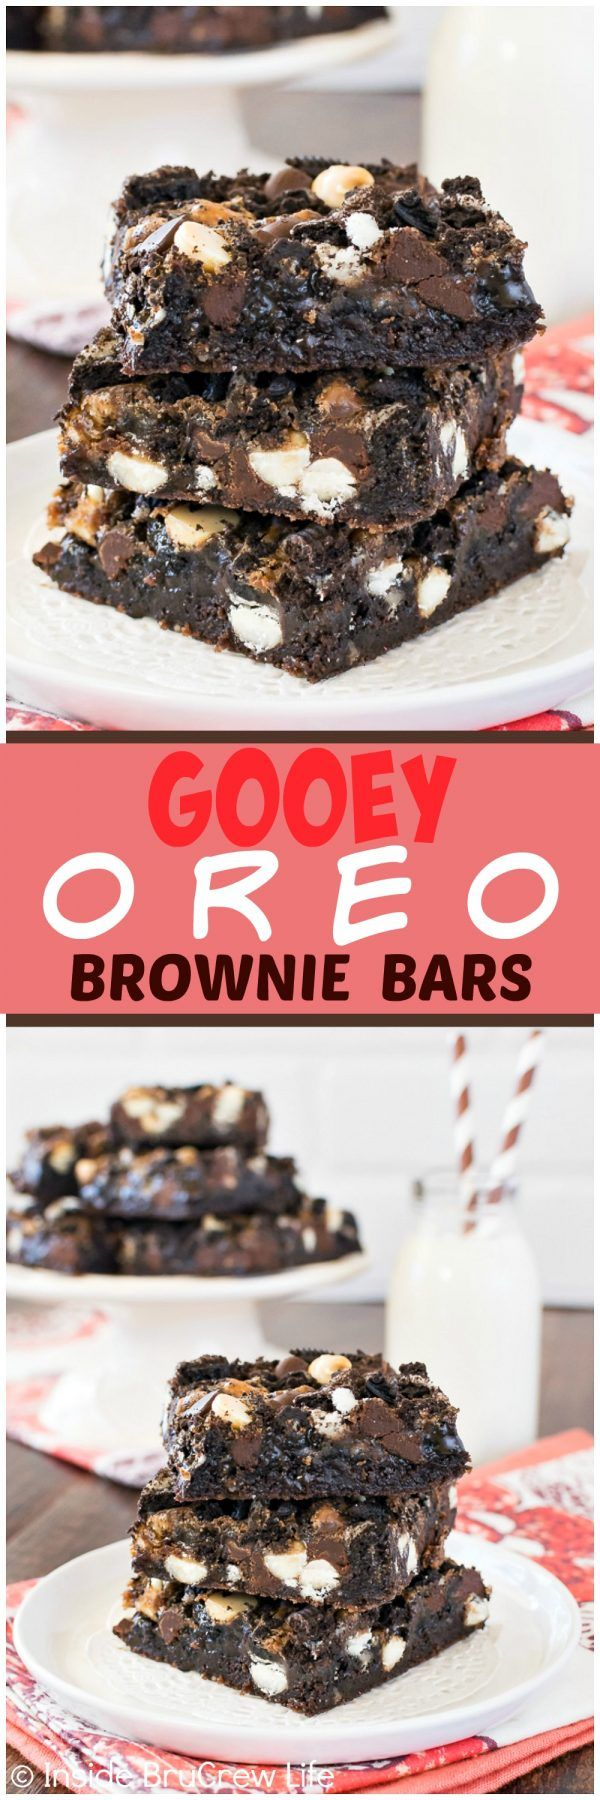 Gooey Oreo Brownie Bars - these easy brownies are loaded with Oreo cookie chunks and chocolate chips. This fudgy dessert recipe is perfect for when you need a chocolate fix!